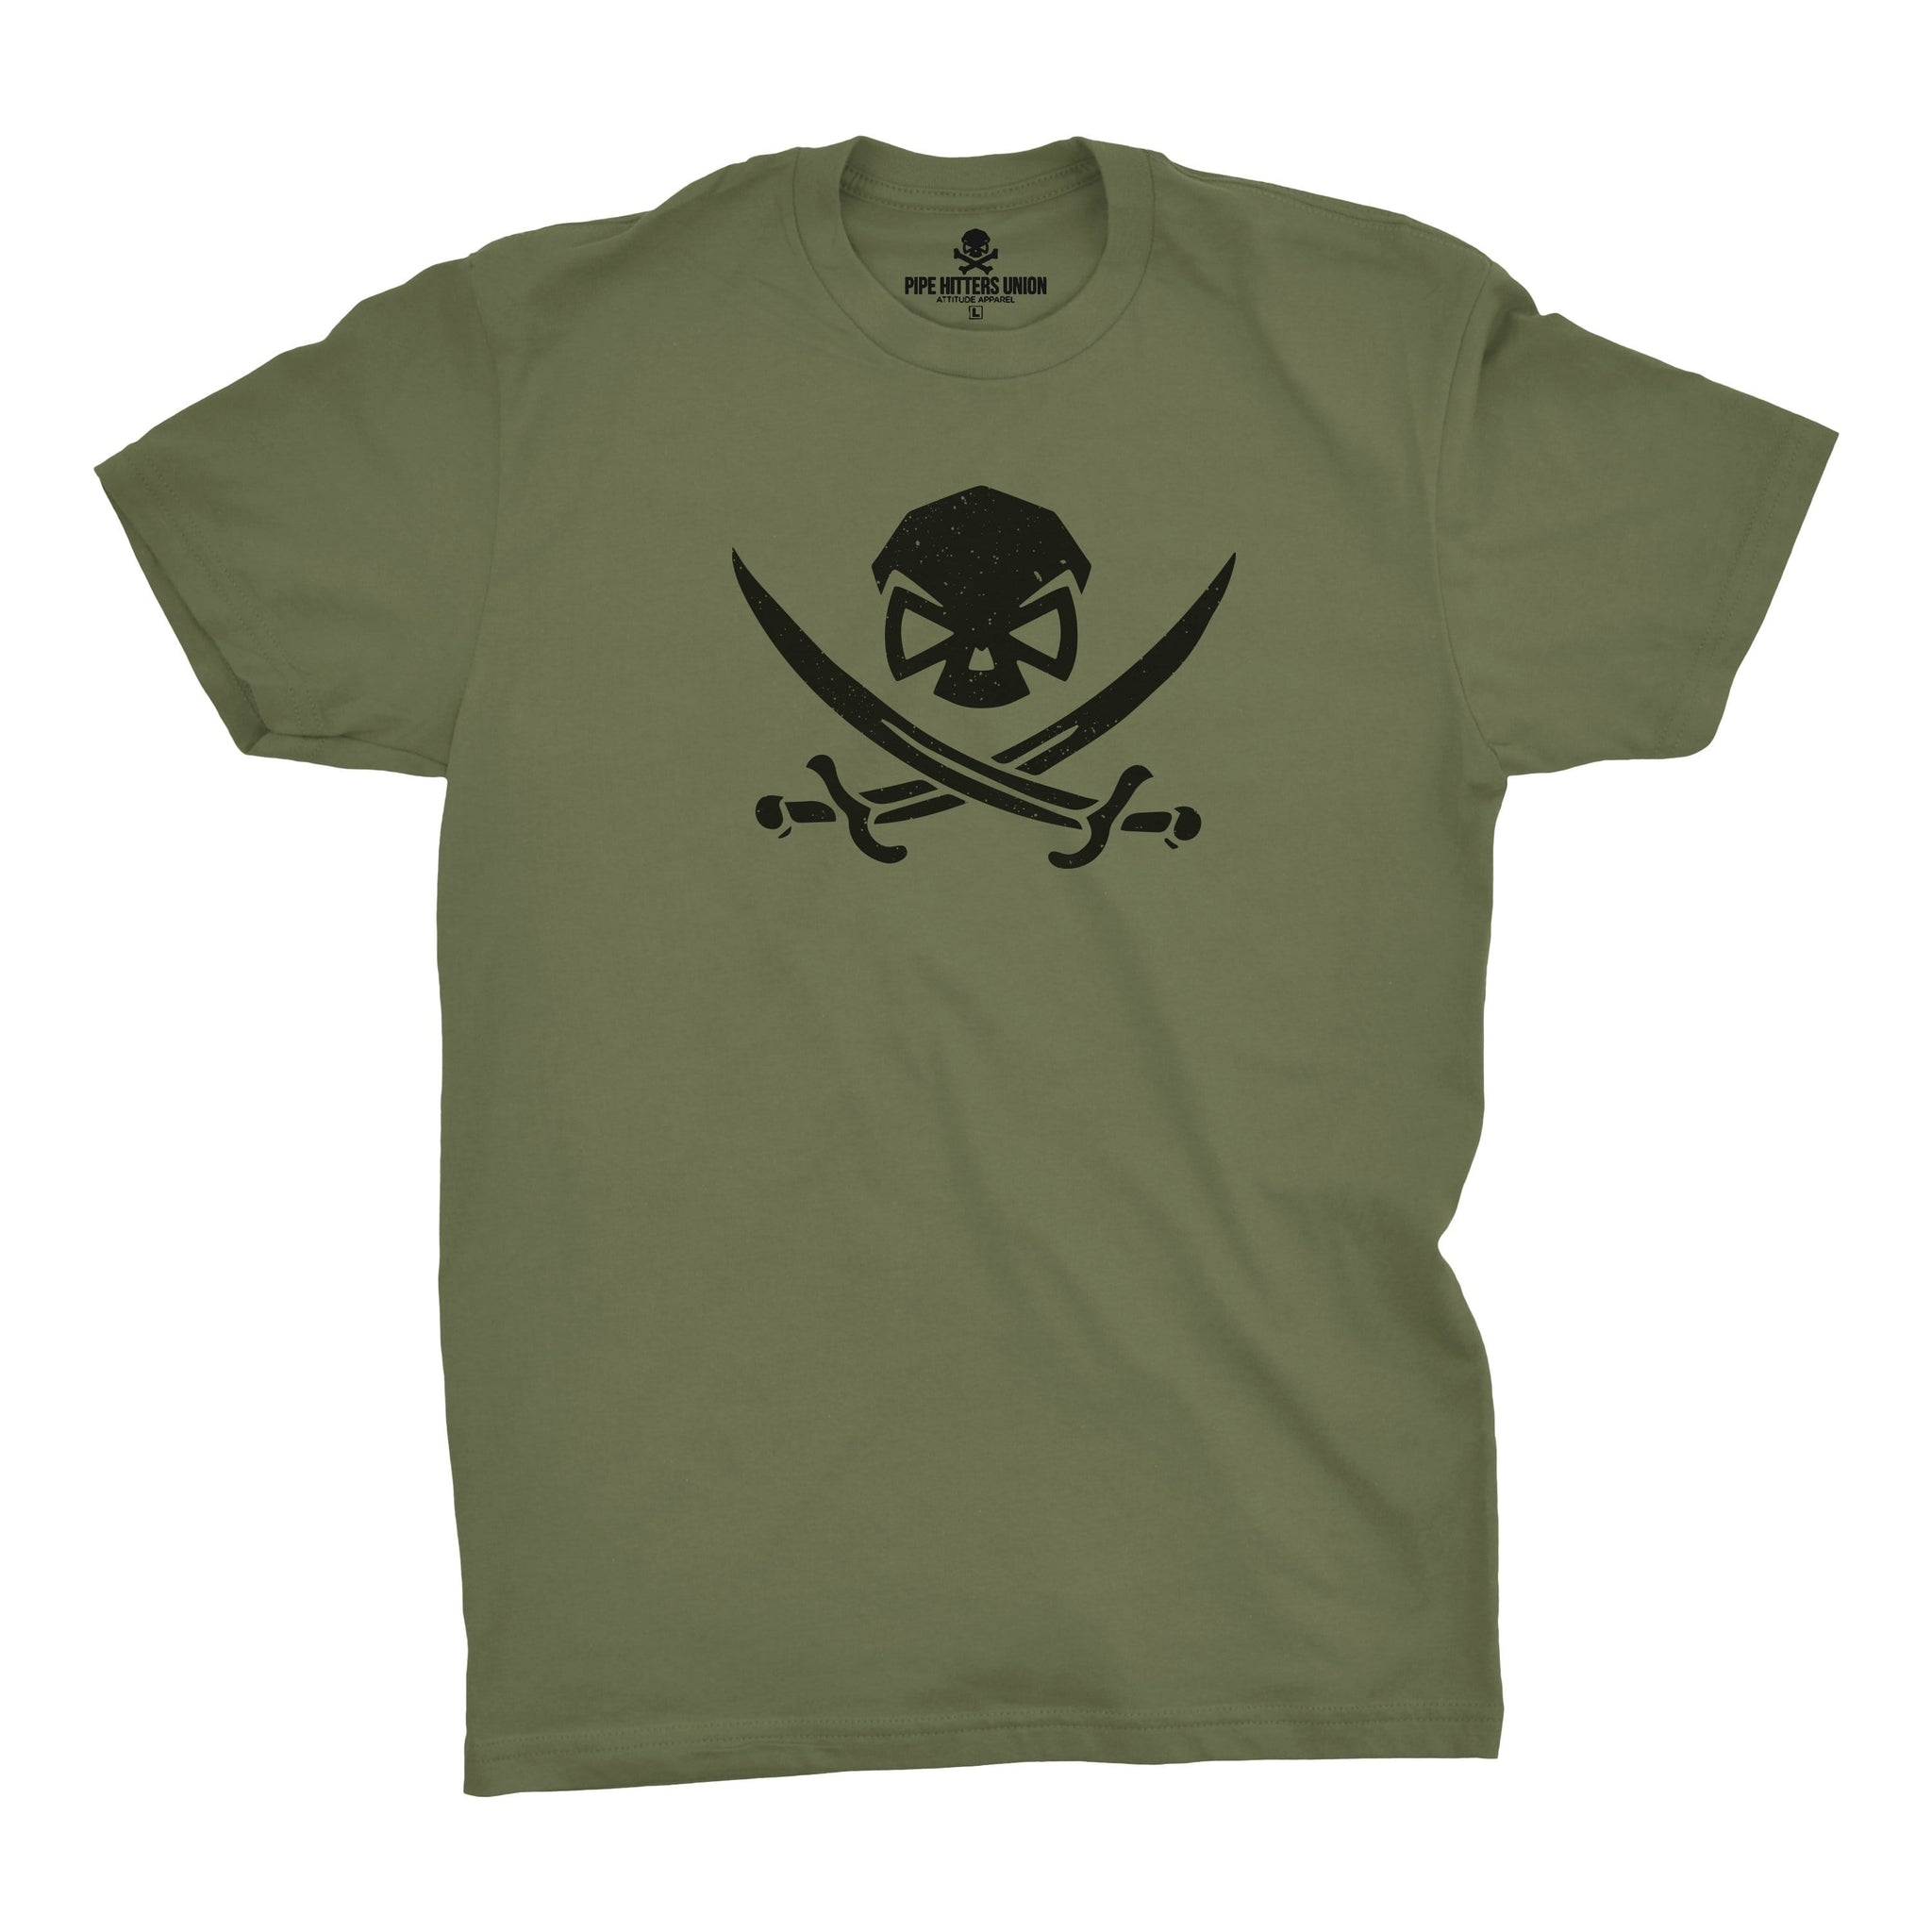 High Seas Hitter - Military Green - T-Shirts - Pipe Hitters Union